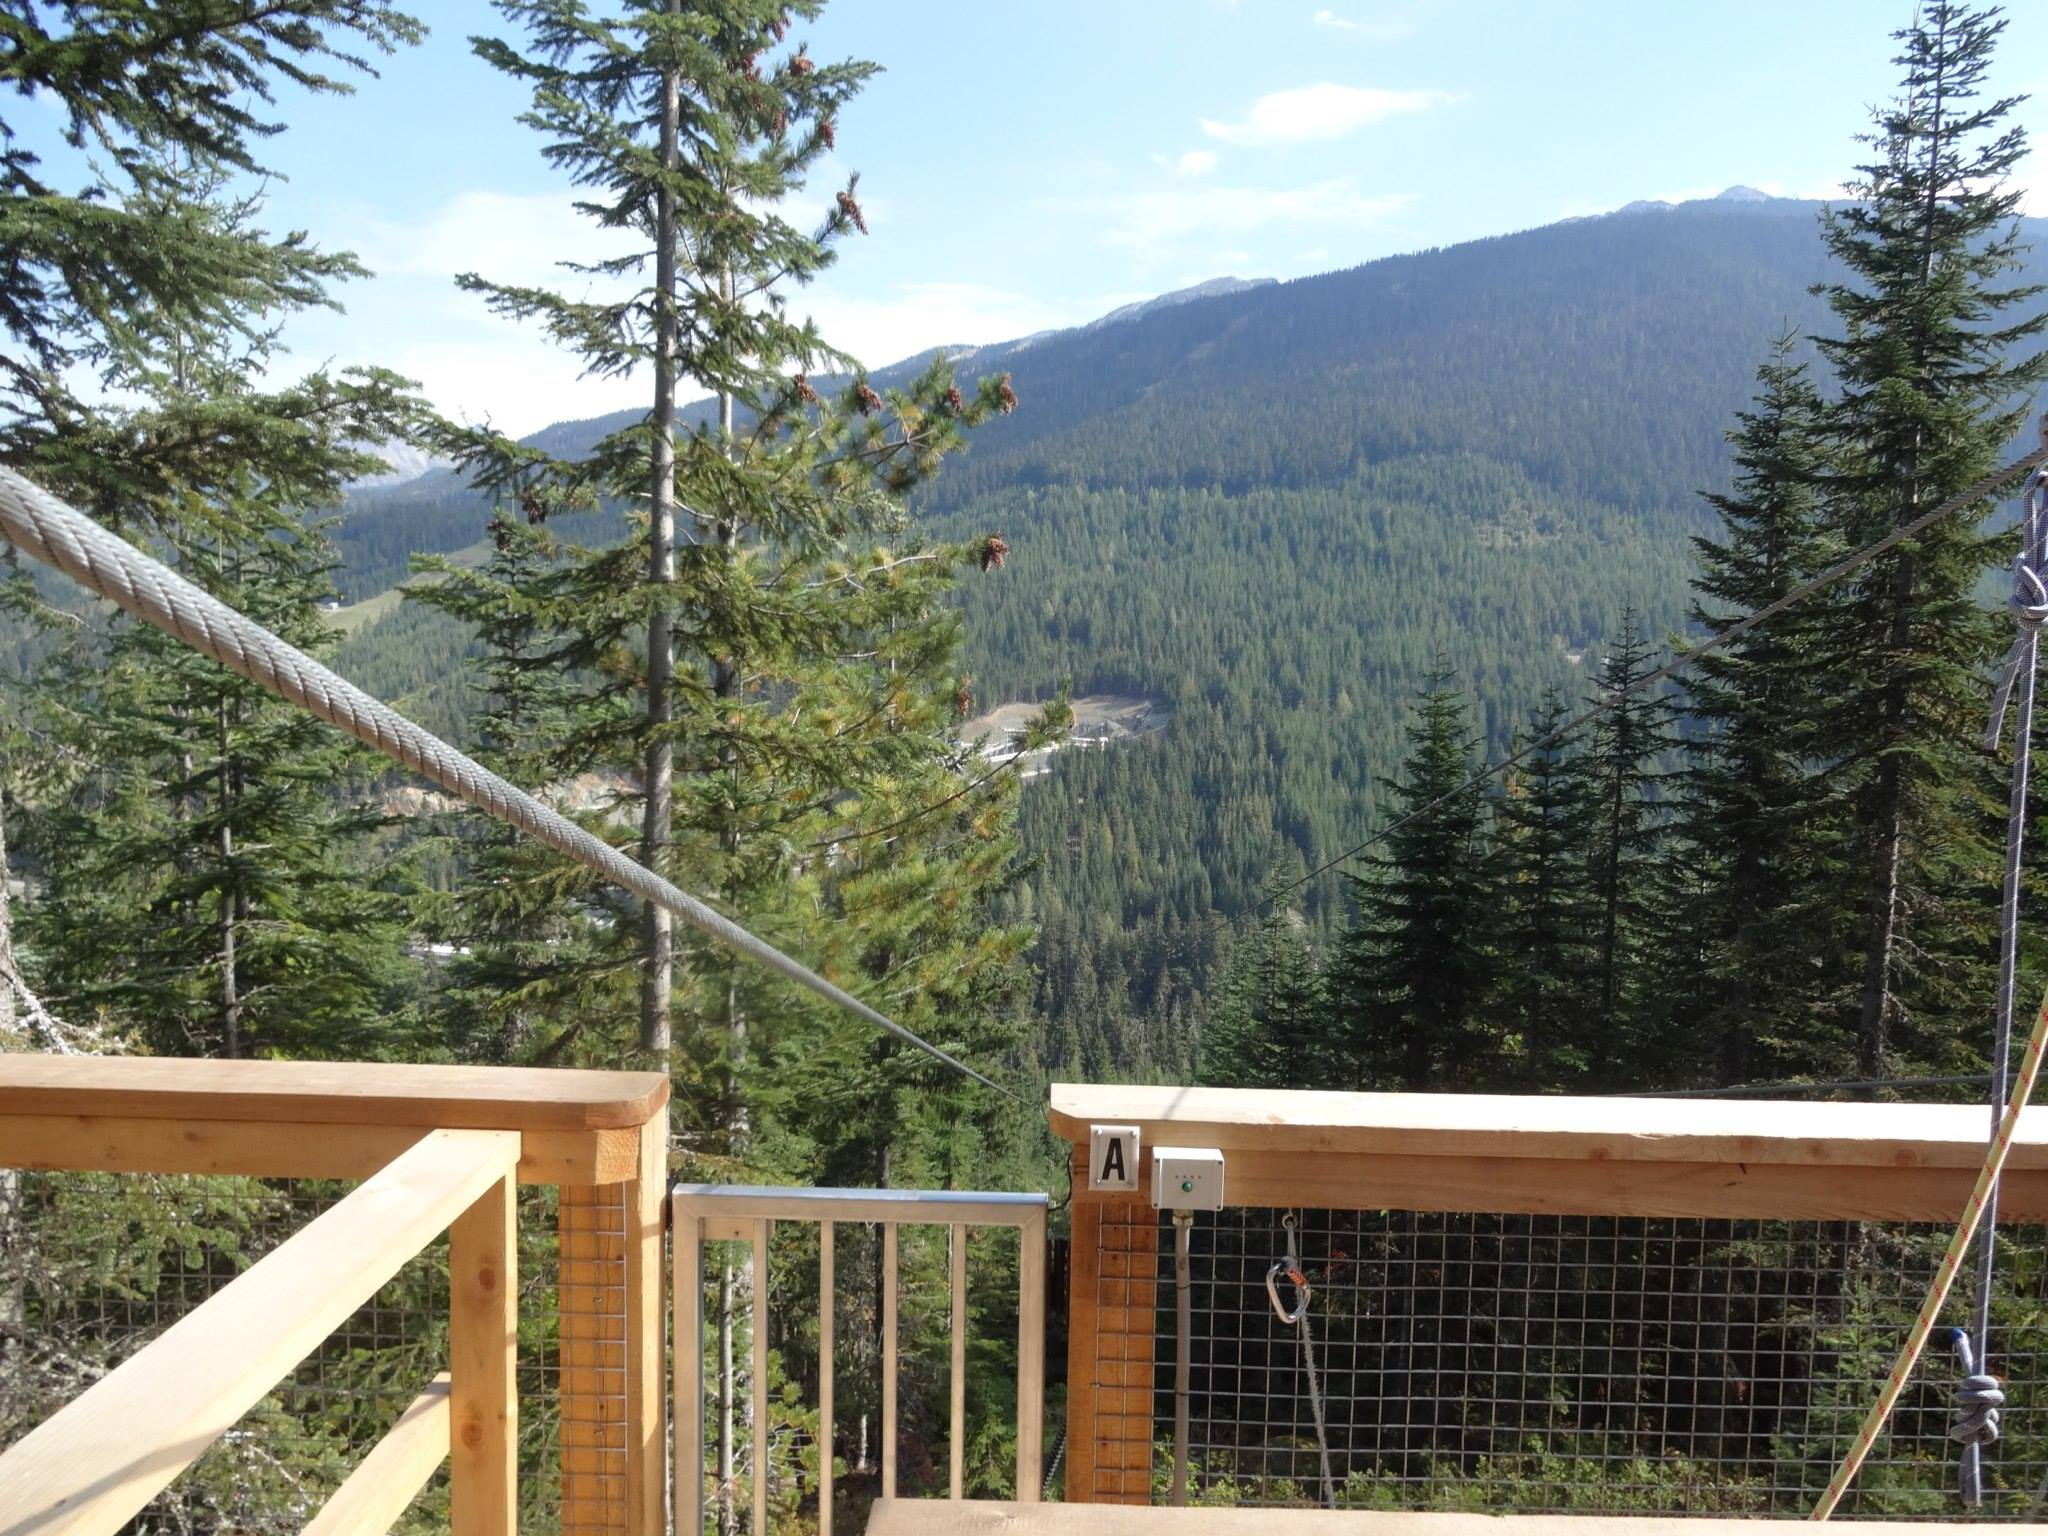 Summertime in Whistler Village and the Sea to Sky Highway